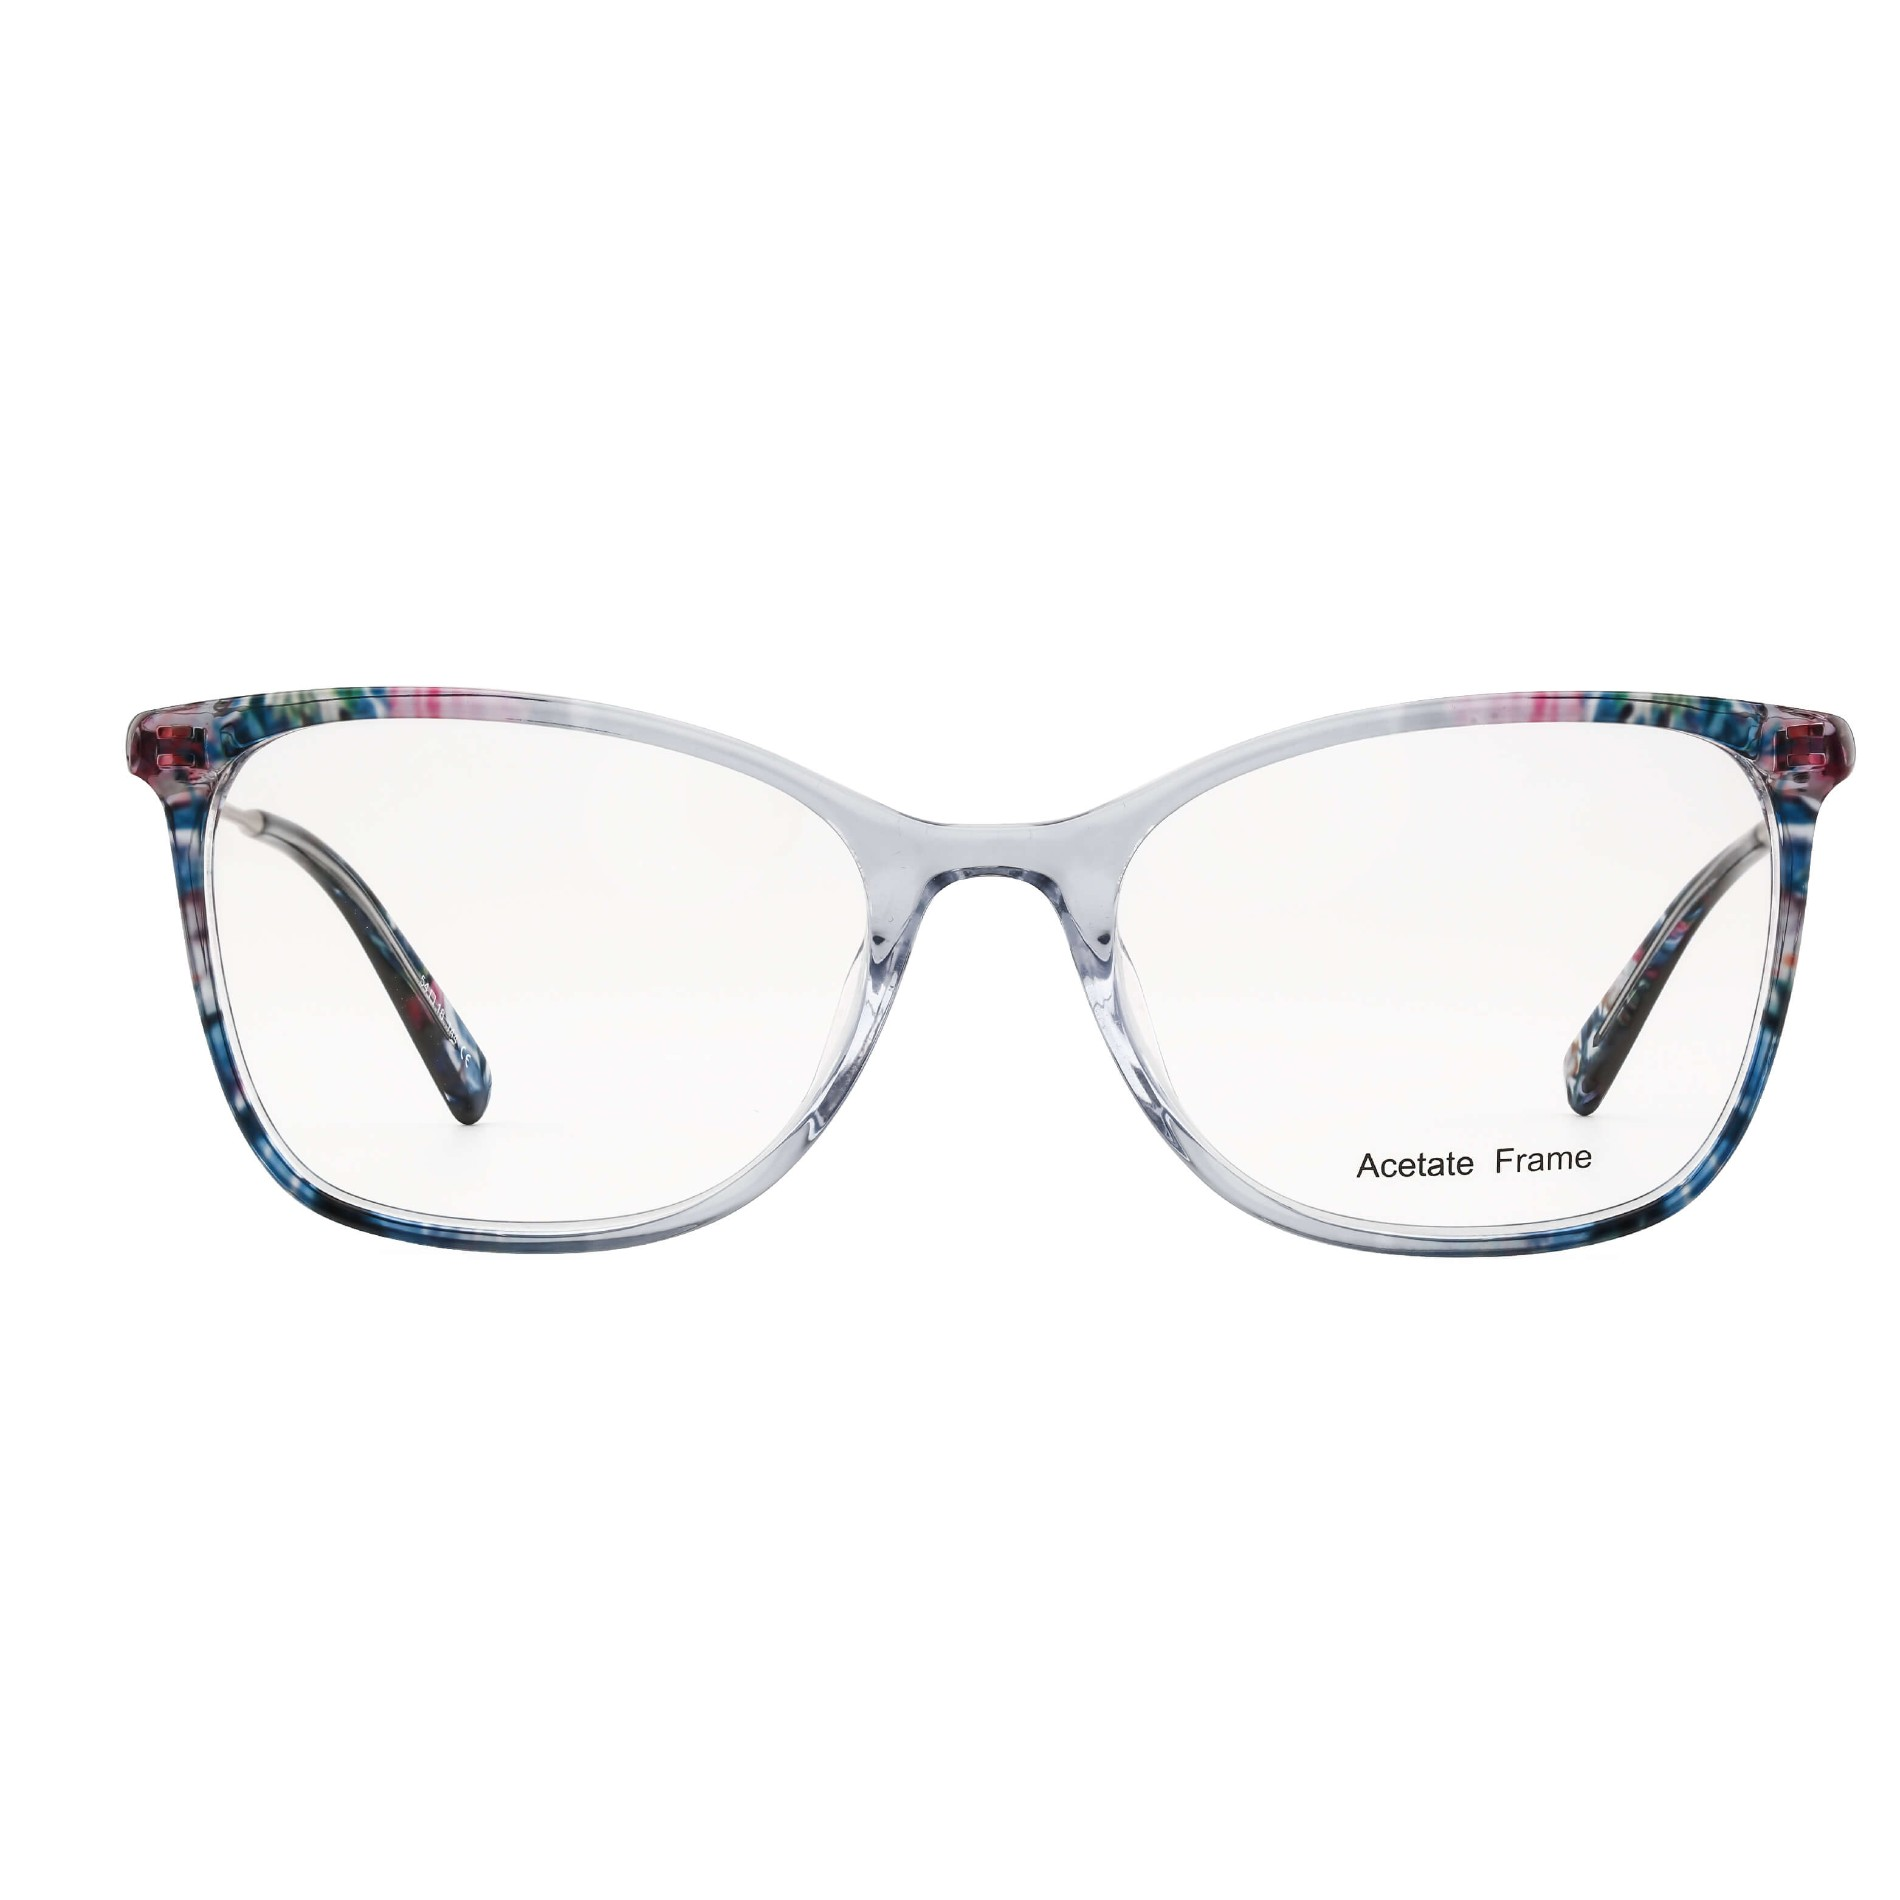 Ladies Full Colour Mixture Acetate Frames with Metal Temple Manufacturers, Ladies Full Colour Mixture Acetate Frames with Metal Temple Factory, Supply Ladies Full Colour Mixture Acetate Frames with Metal Temple